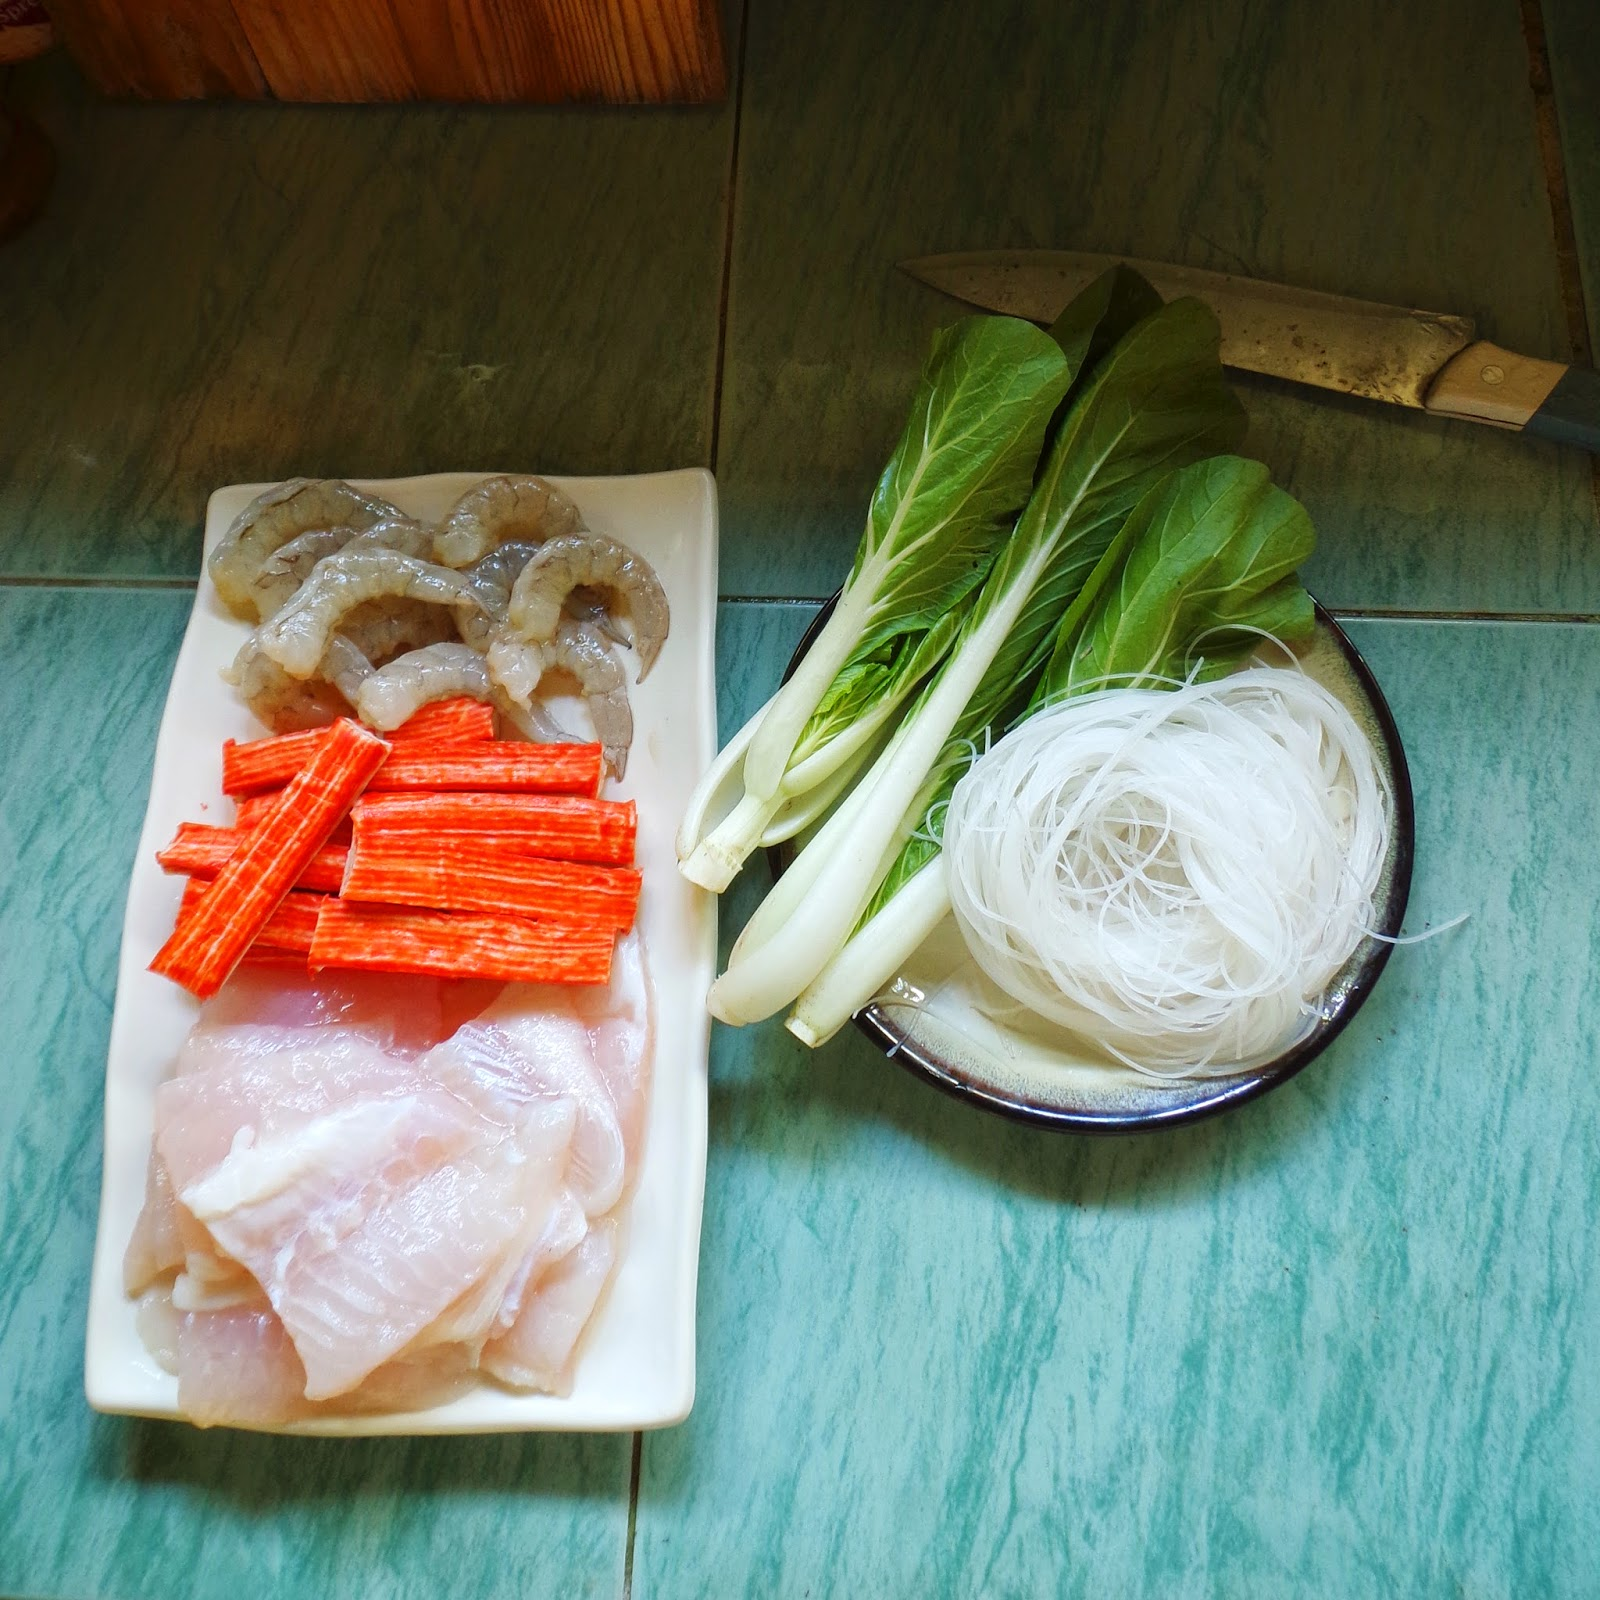 seafood restaurant, shrimp dishes, seafood recipe, seafood appetizers, fish soup, seafood menu, healthy seafood recipes